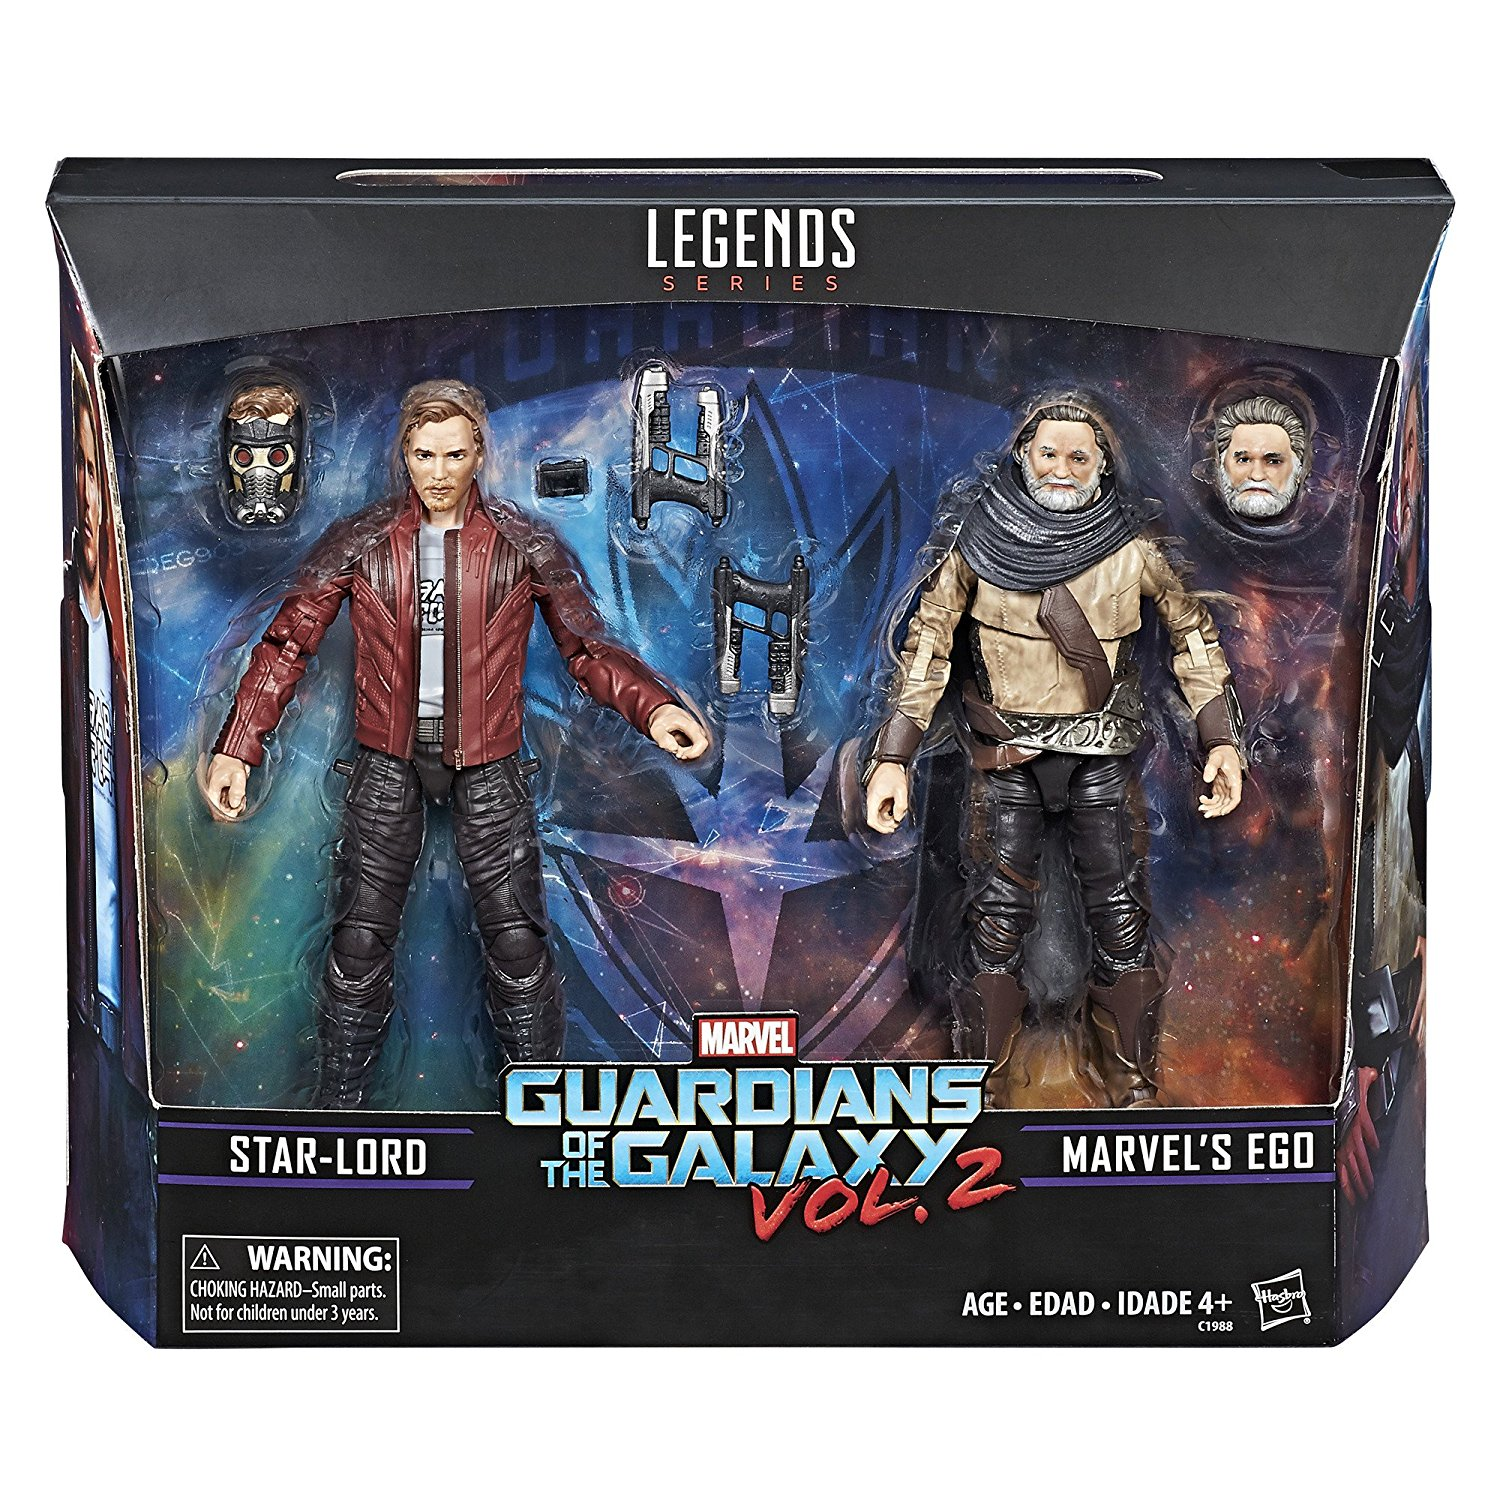 Marvel Legends Guardians Of The Galaxy Vol. 2 Marvel's Ego & Star-Lord 2-Pack $16.50 On Amazon